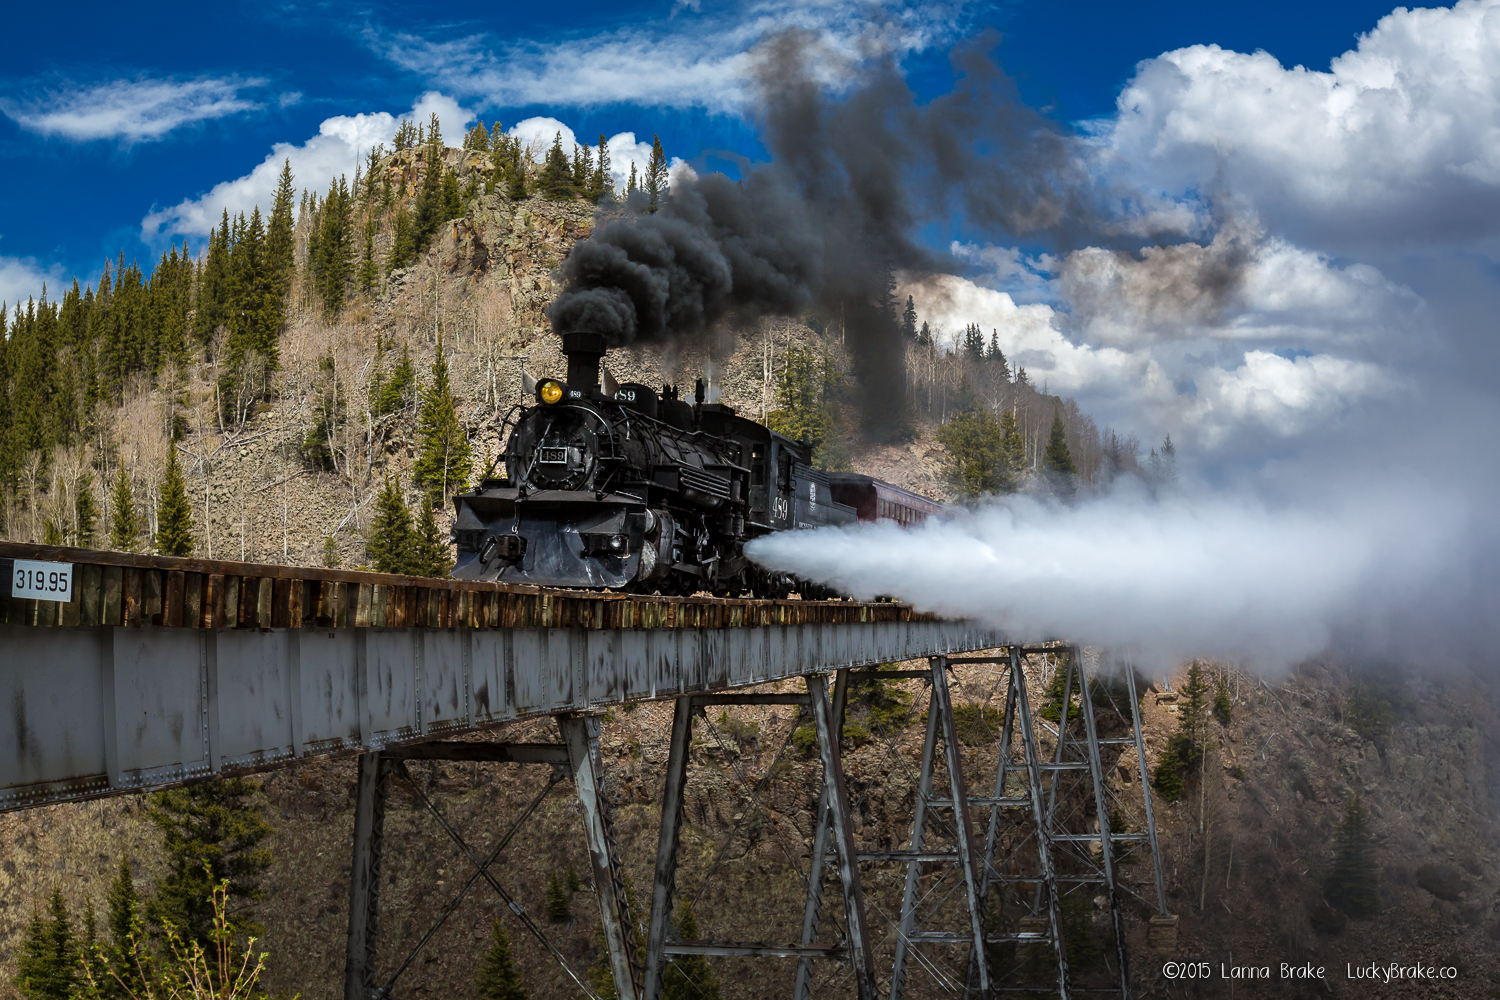 The train crosses the bridge at the Cascades along the Cumbres & Toltec Scenic Railroad route. HeidiTown.com, photo by Alanna Brake